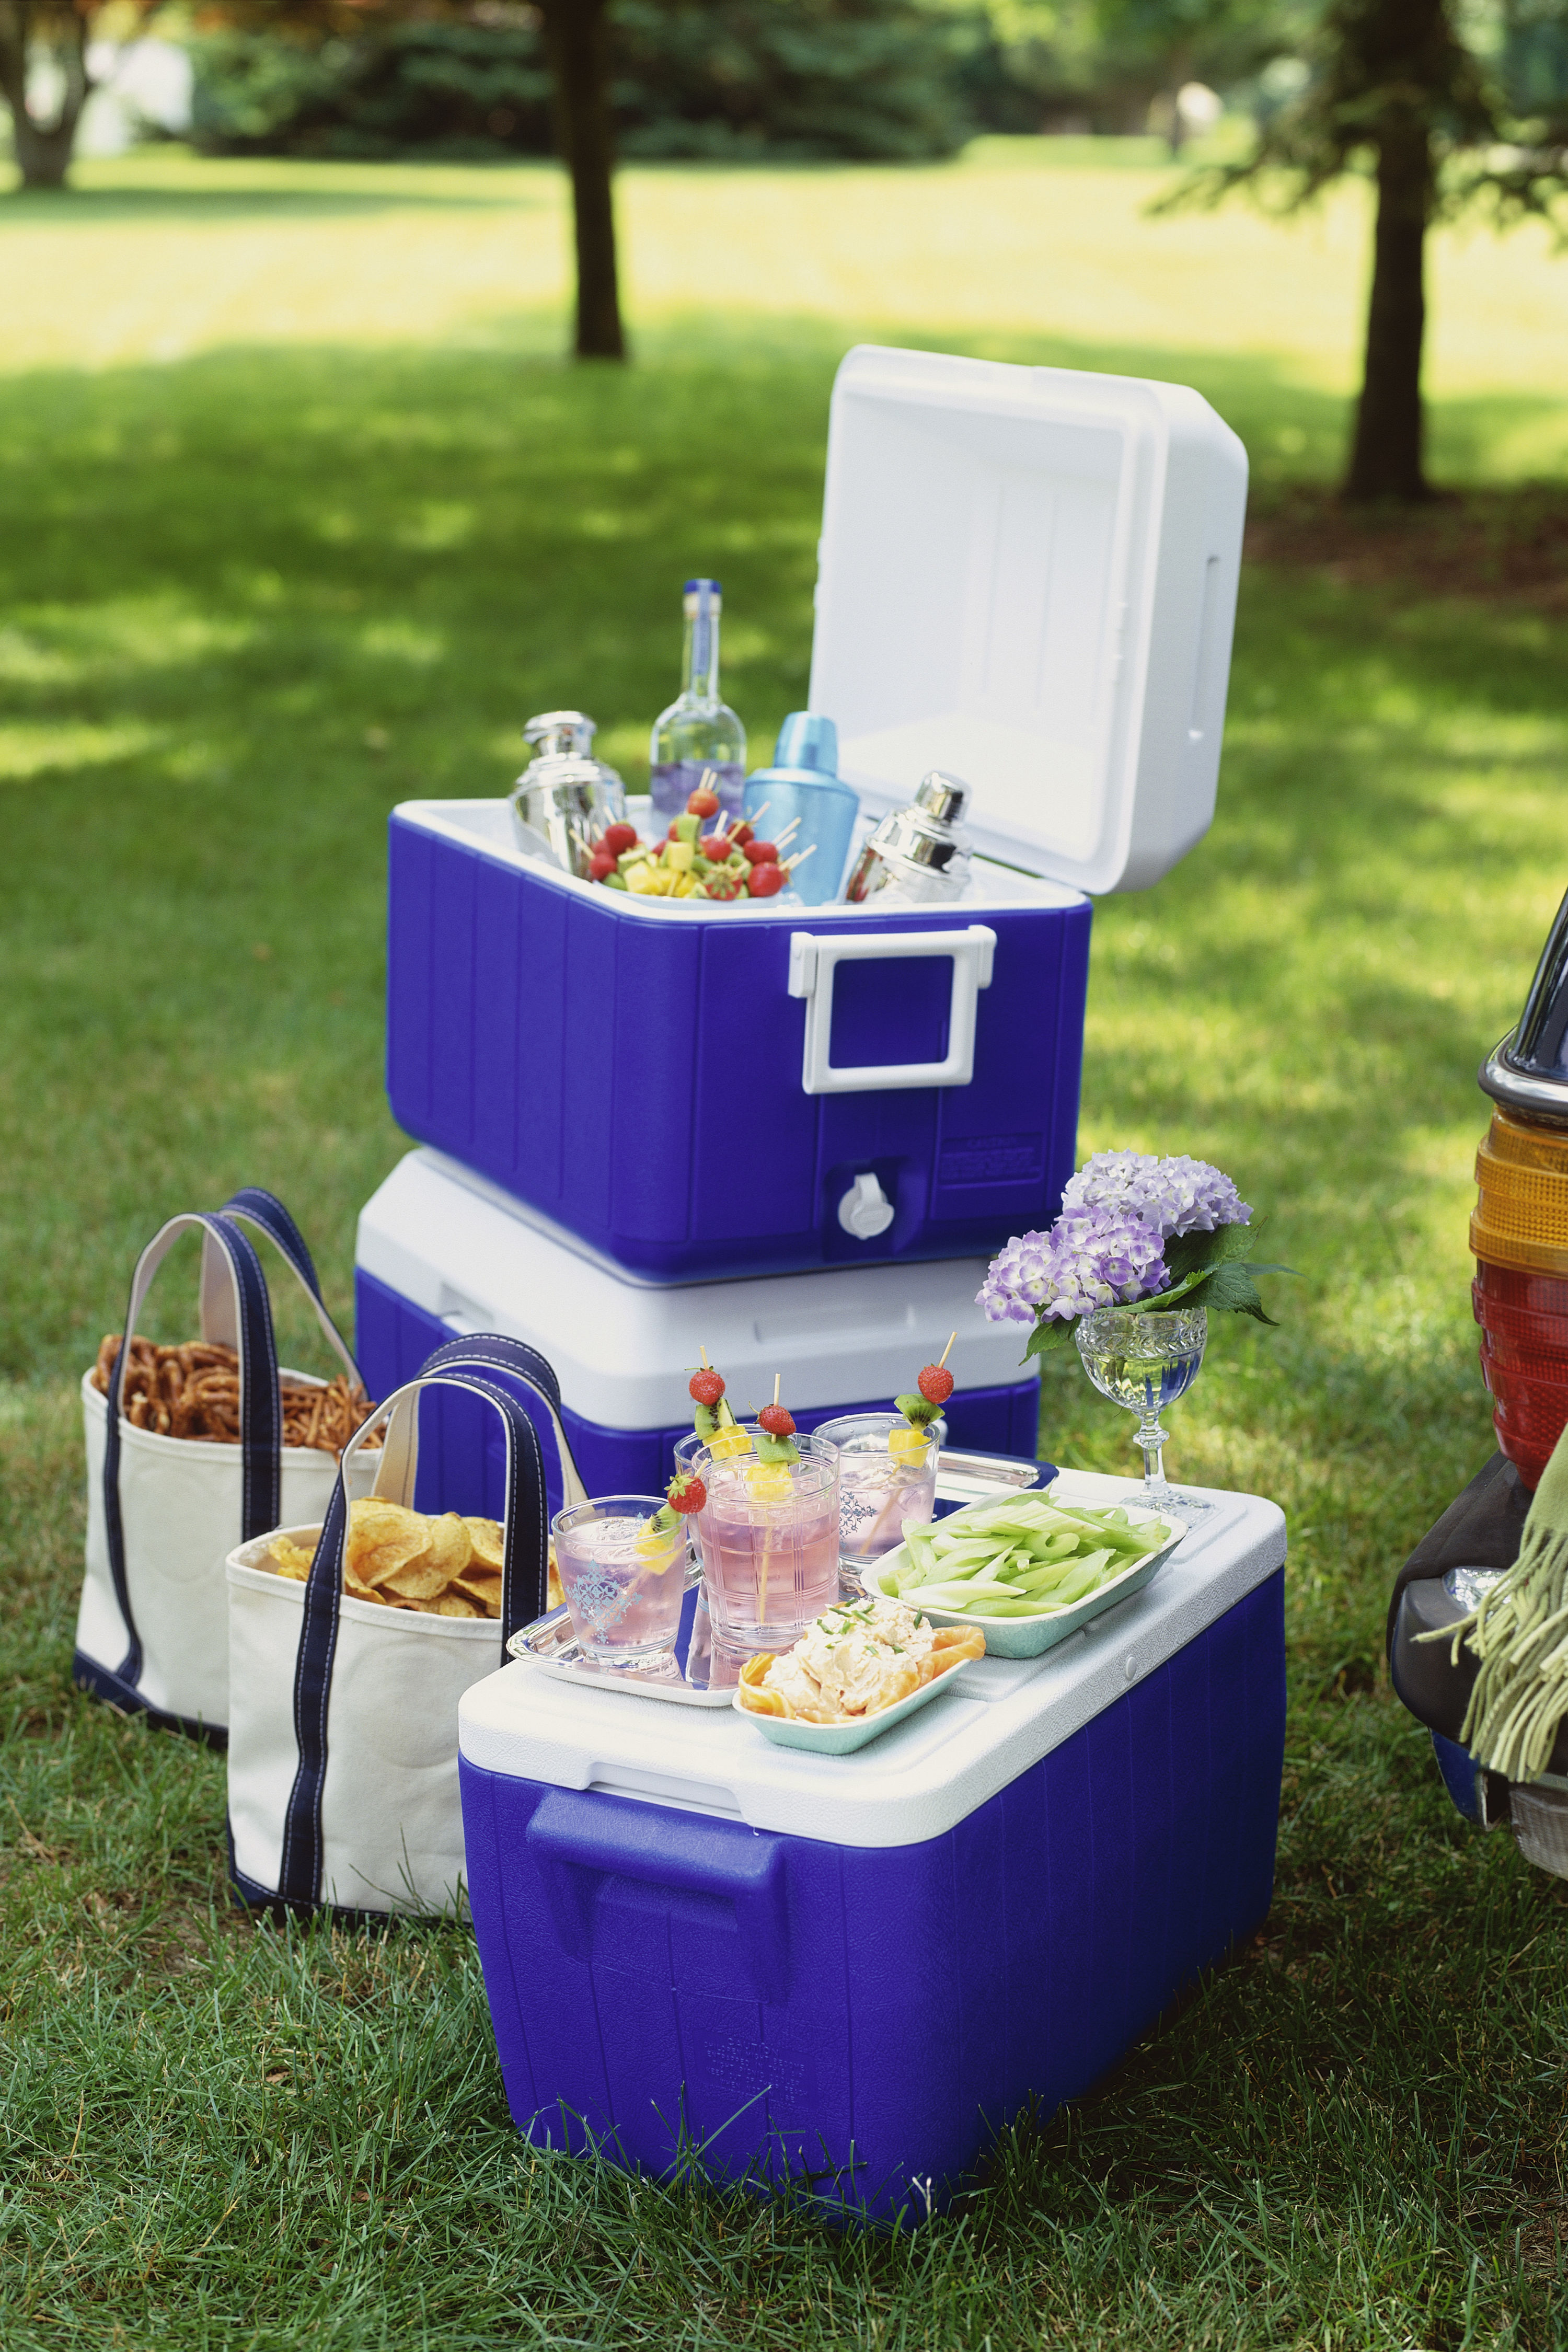 WATCH: Here's The Best Way To Pack A Cooler